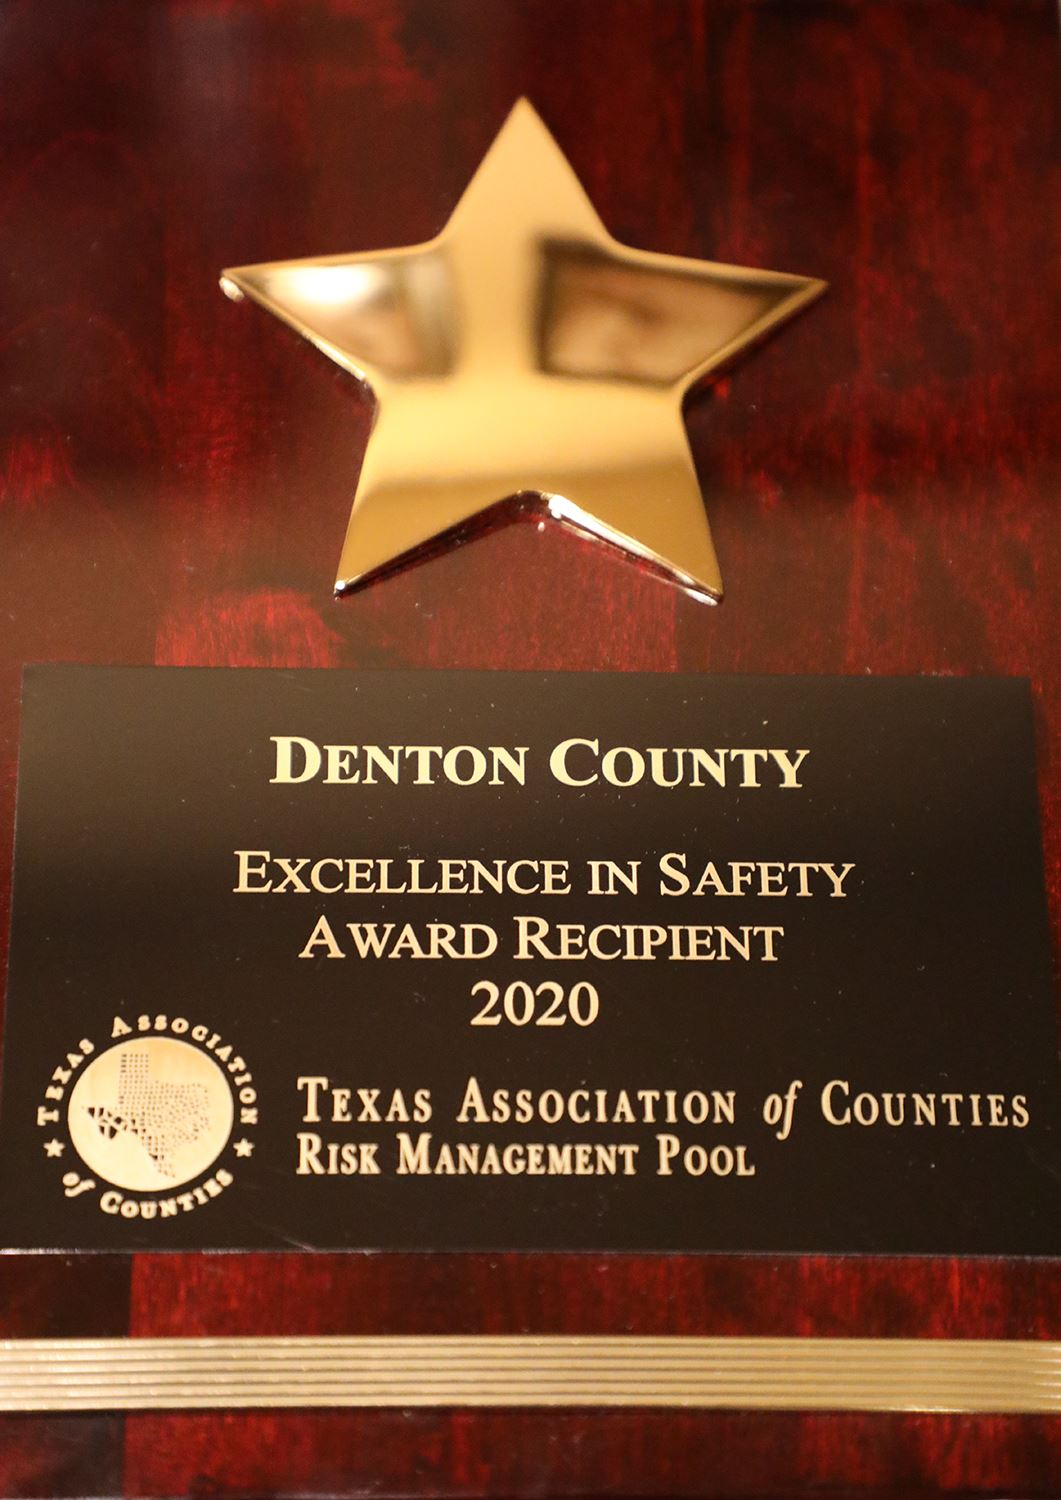 Denton County receives Safety Award for 2021 from Texas Association of Counties.